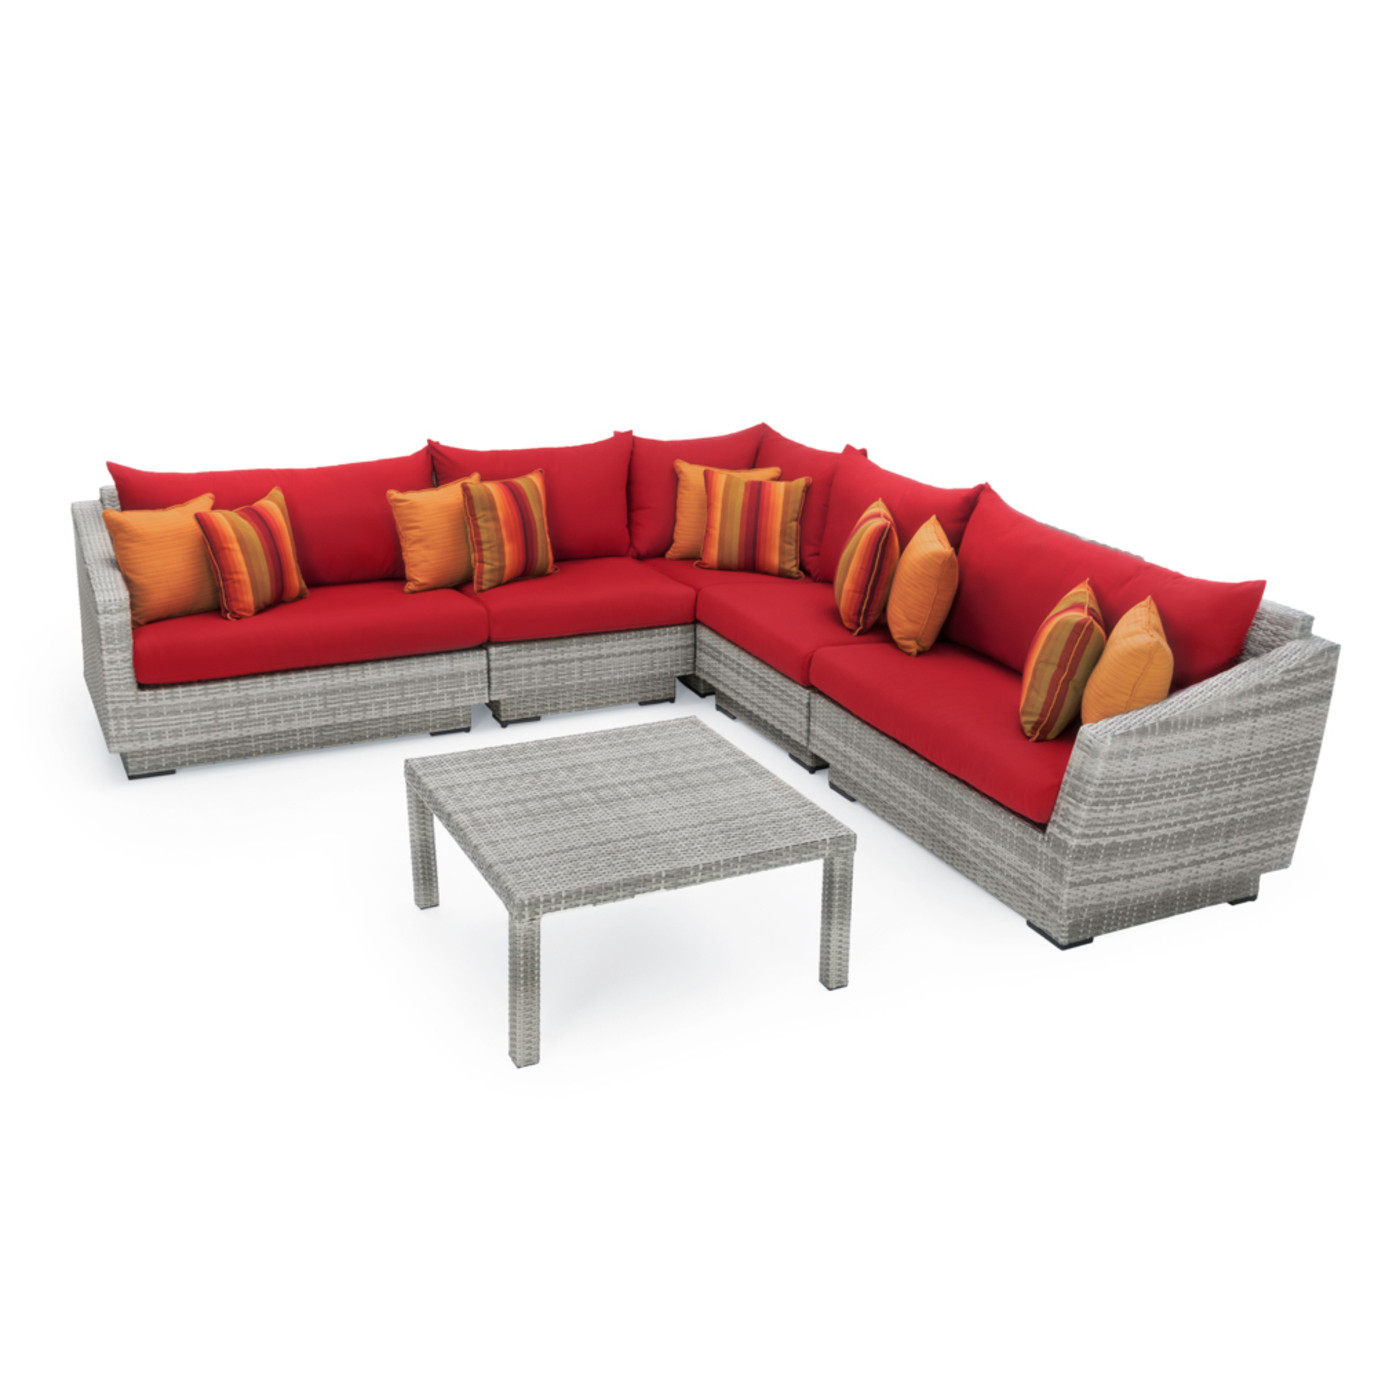 Cannes™ 6pc Sectional & Table - Sunset Red